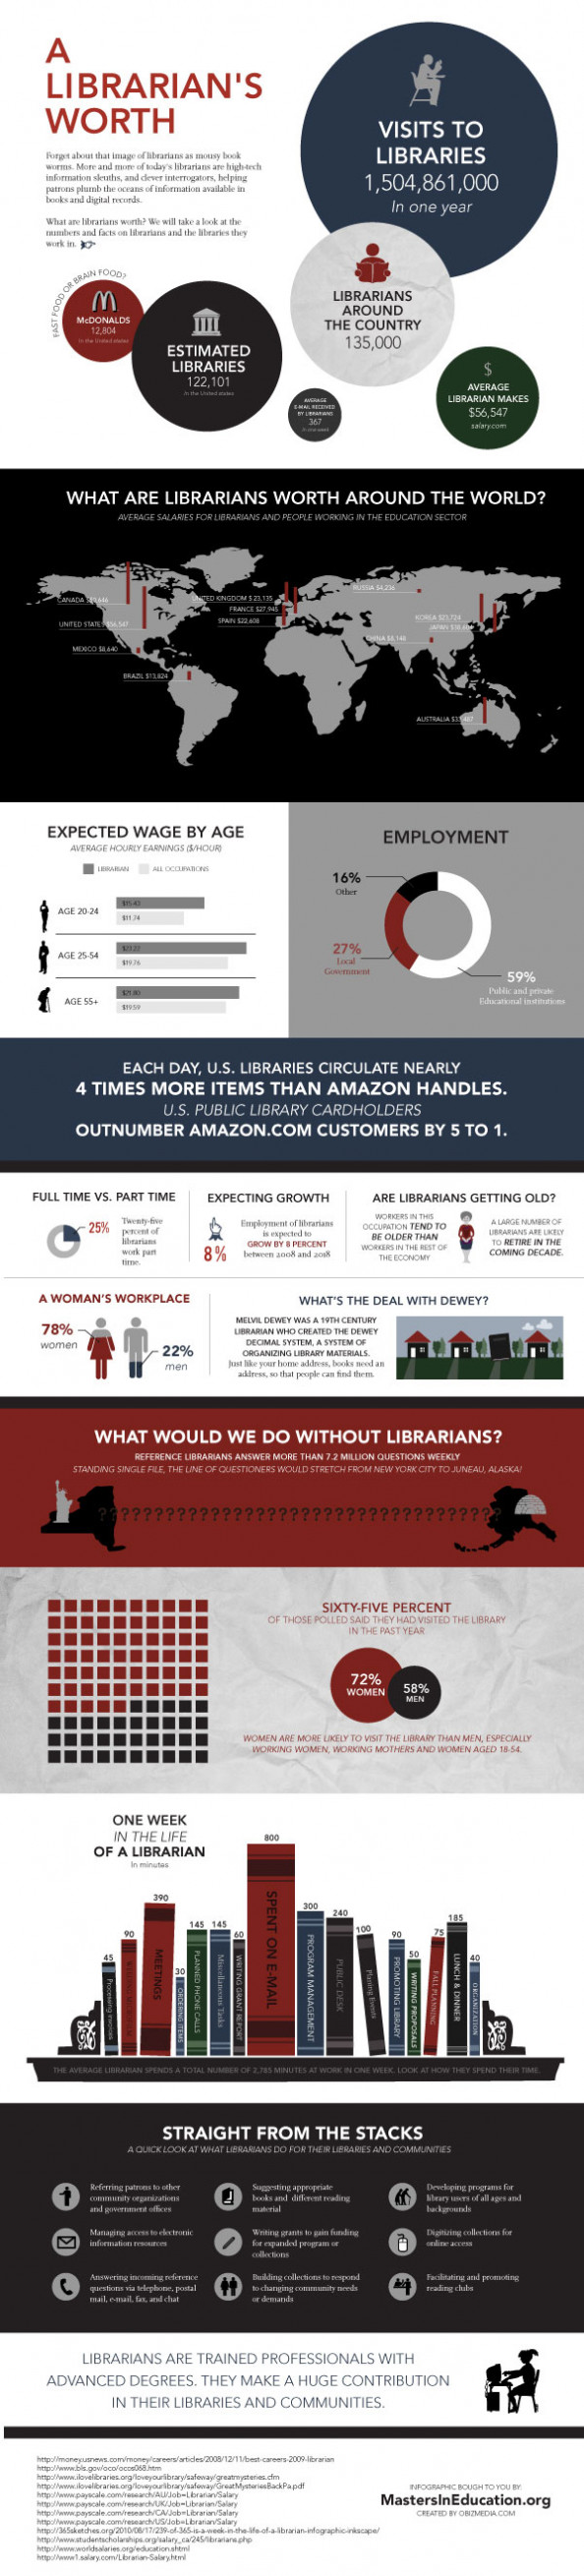 A Librarian's Worth Around the World Infographic